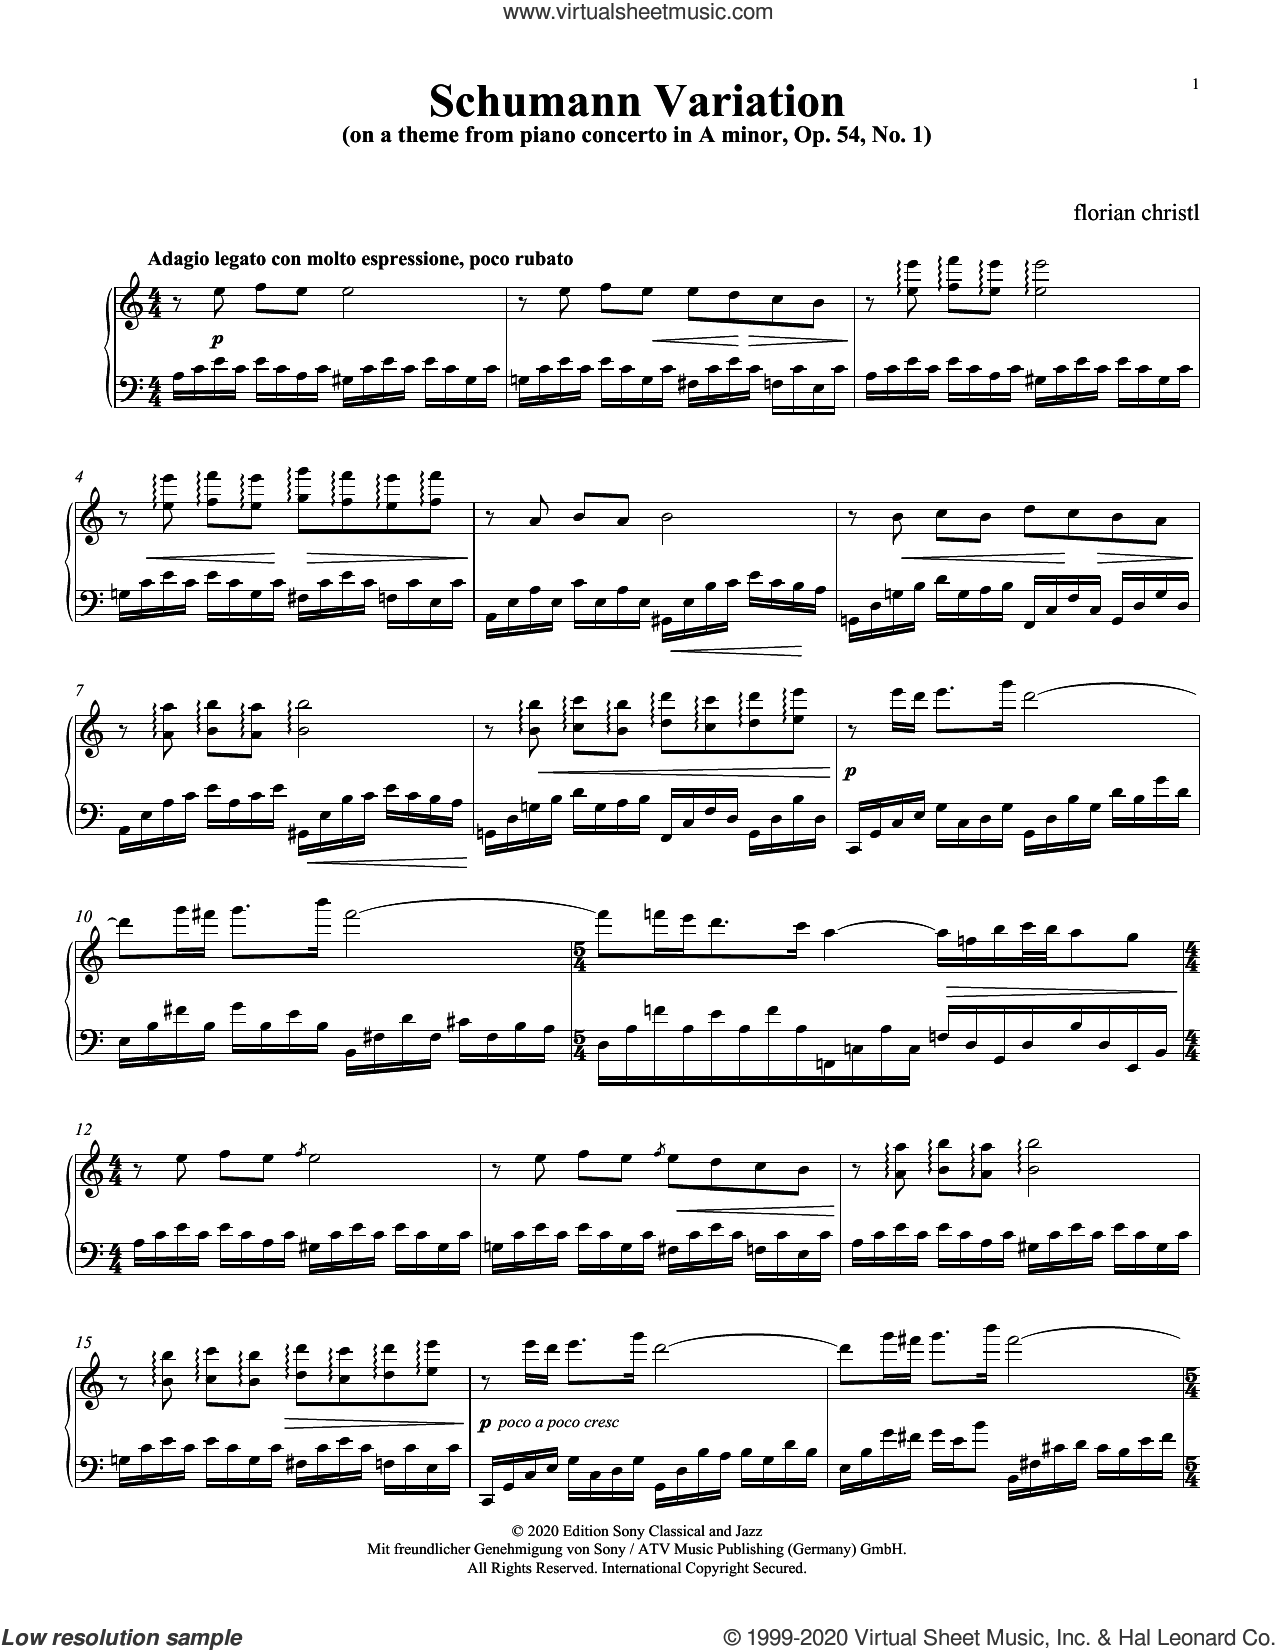 Schumann Variation (on a Theme from Piano Concerto in A Minor, Op. 54: I) sheet music for piano solo by Florian Christl, classical score, intermediate skill level